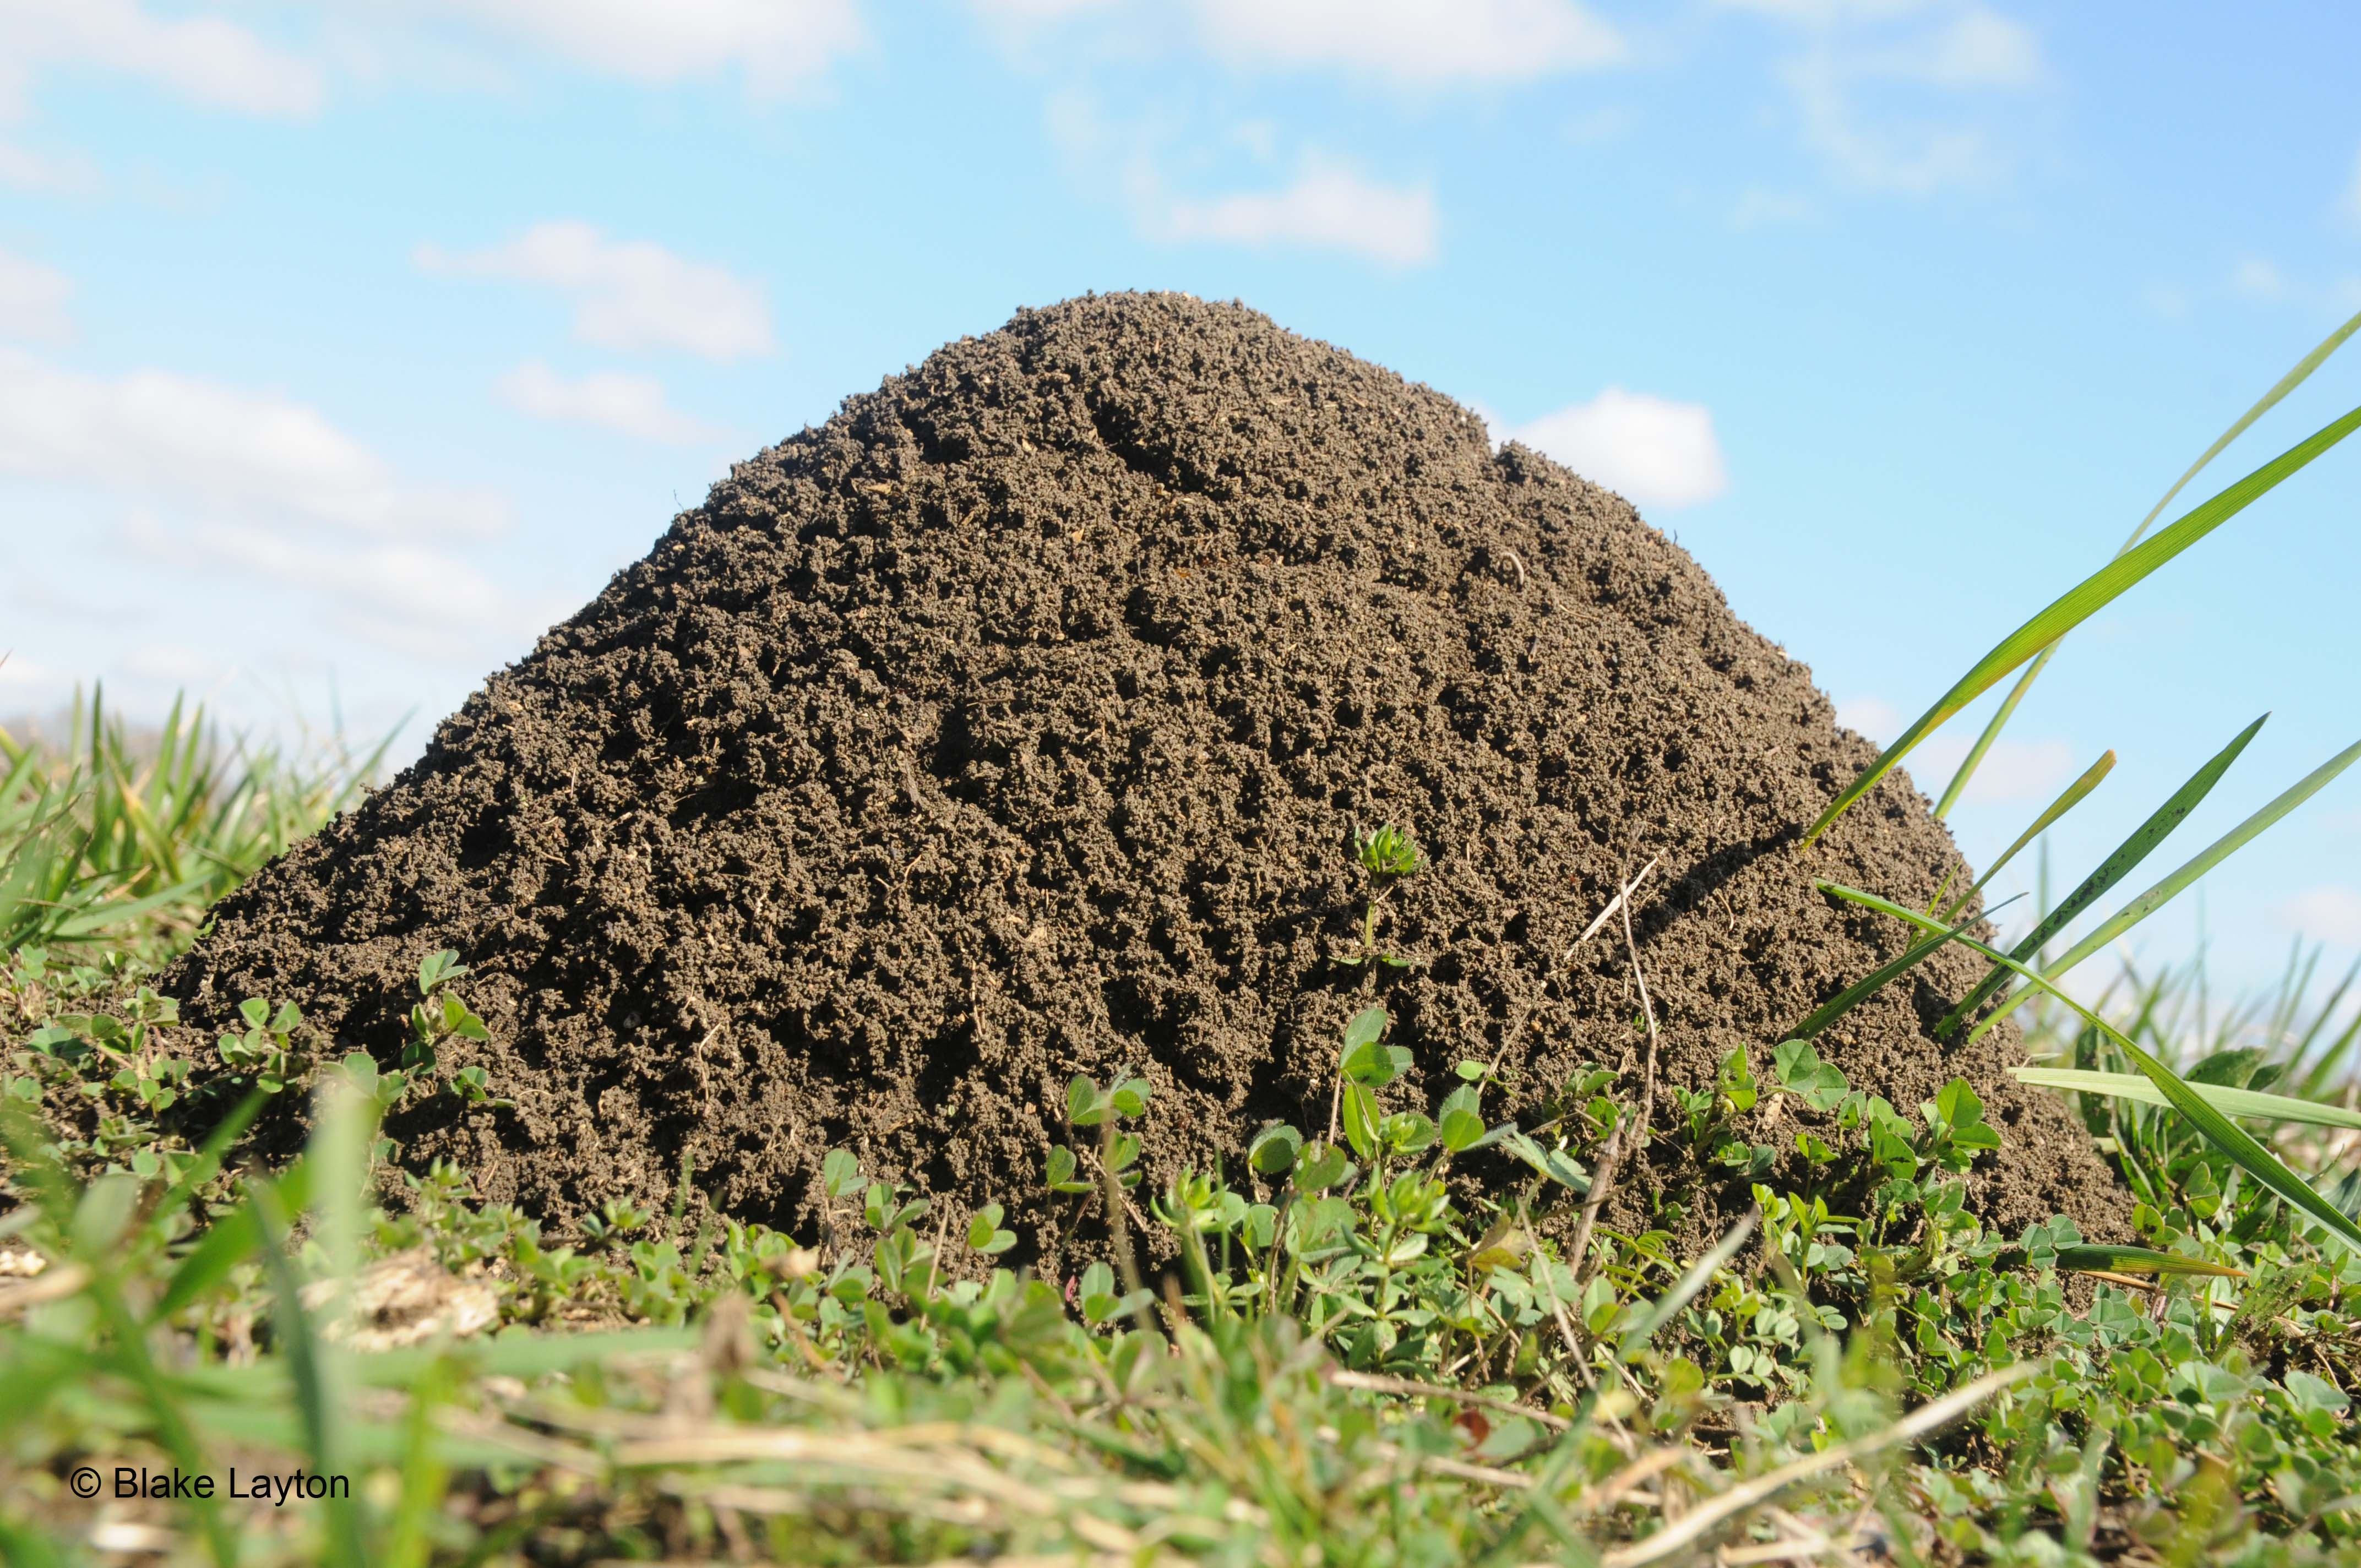 a large fire ant mound